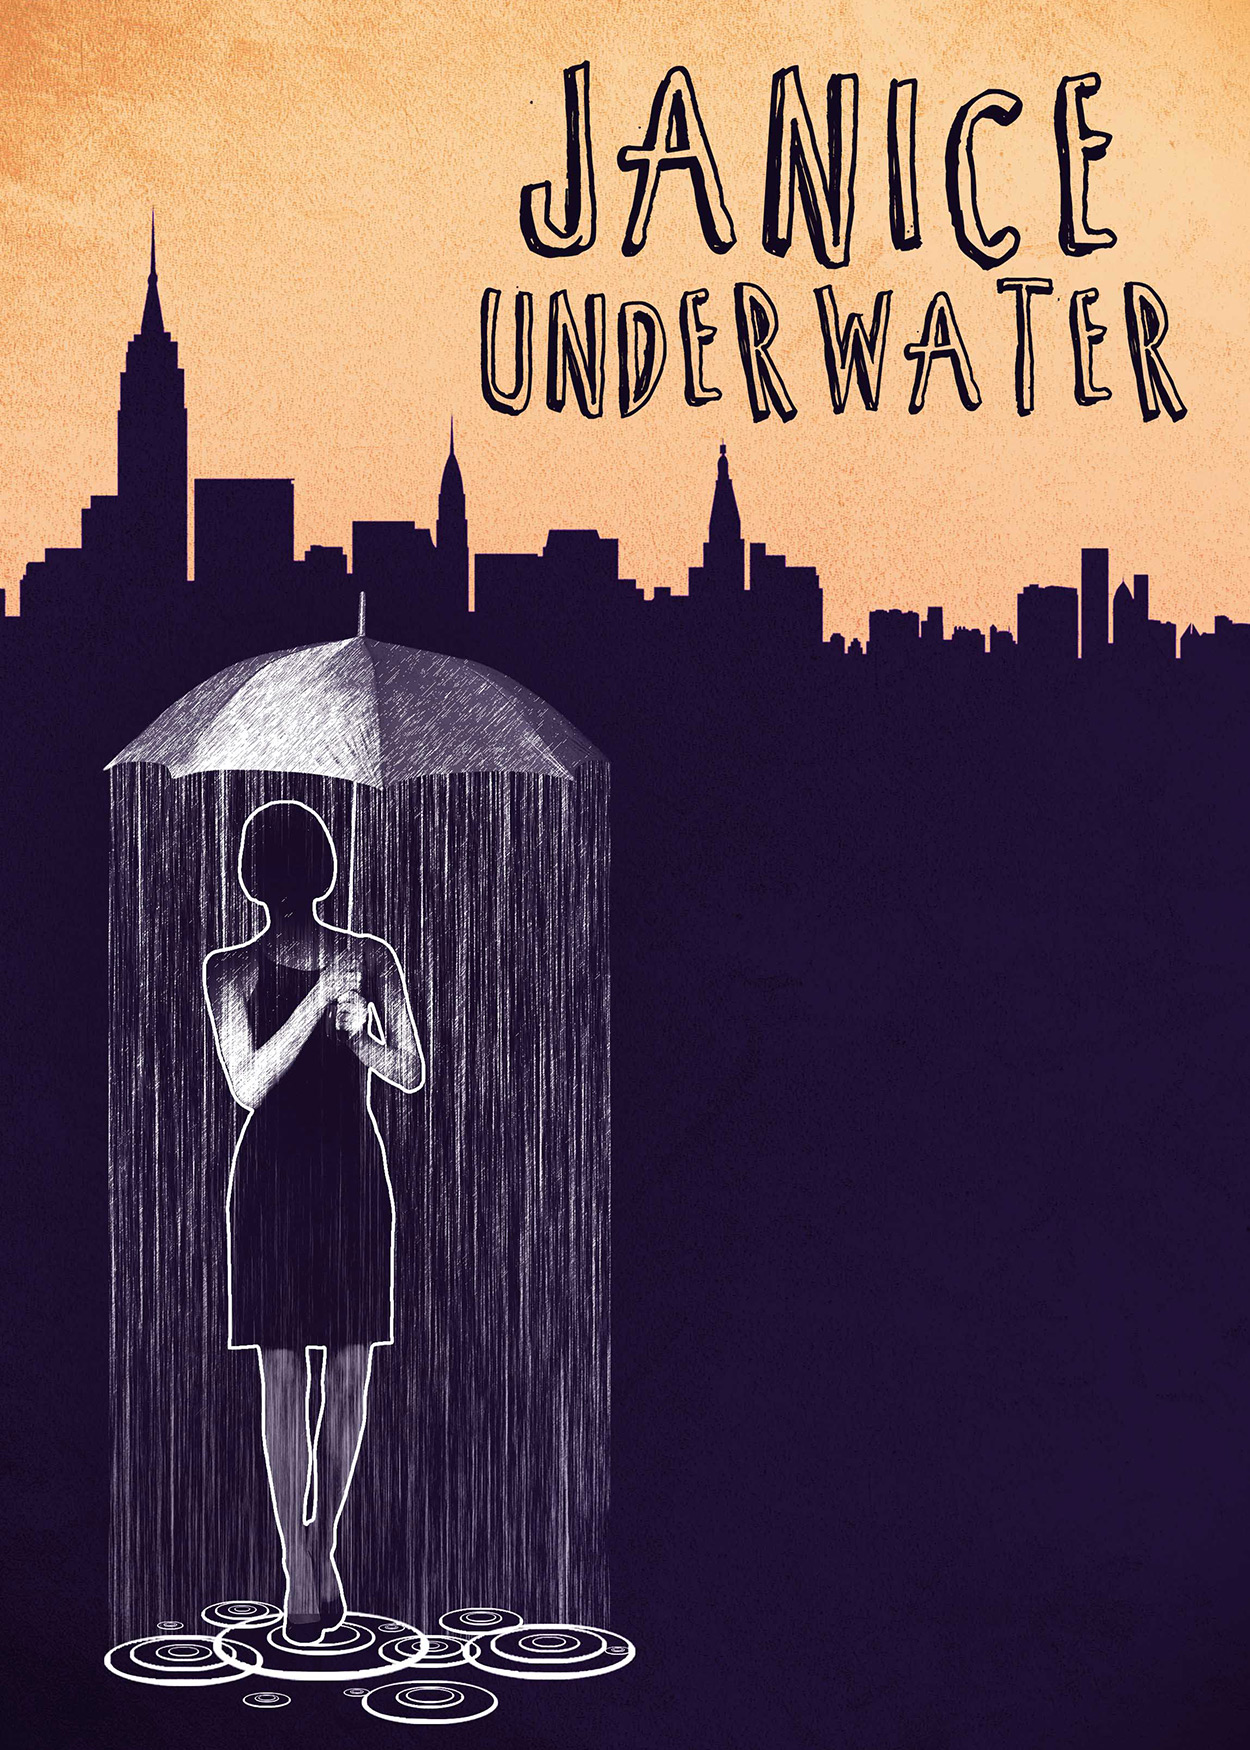 Key Art from Janice Underwater (2014). A silouhette of the New York City skyline is at the background. At the forefront, an outline of a woman is holding an umbrella. It is raining only around her.